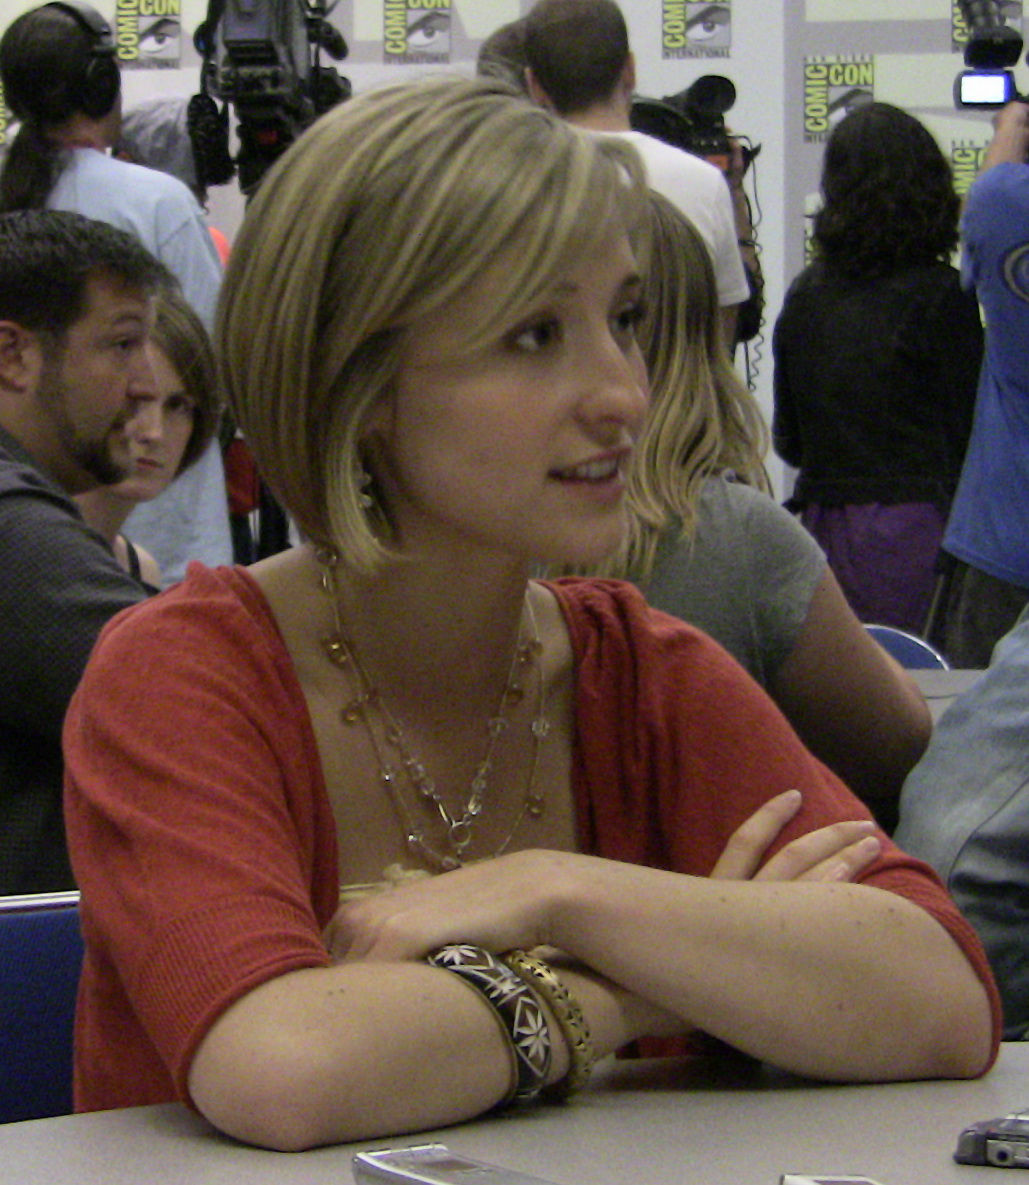 Allison_Mack_at_ComicCon_2009.jpg: Kristin Dos Santos from Los Angeles, California, United Statesderivative work: Tabercil [CC BY-SA 2.0 (https://creativecommons.org/licenses/by-sa/2.0)]